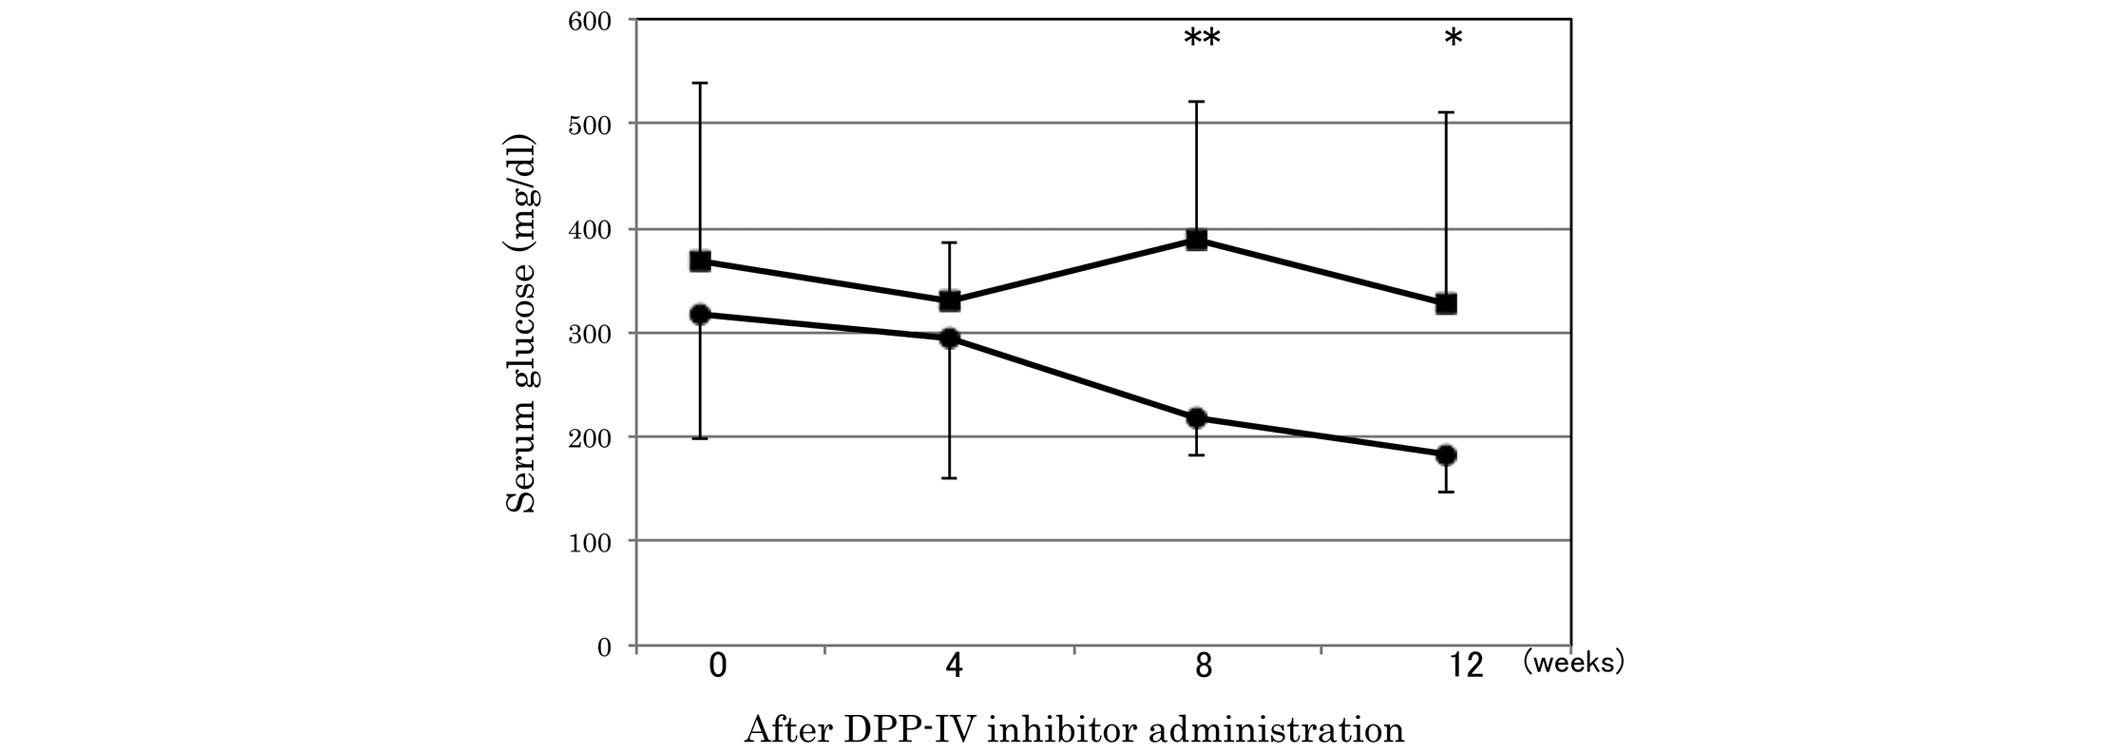 Therapeutic effects of the dipeptidyl peptidase-IV inhibitor